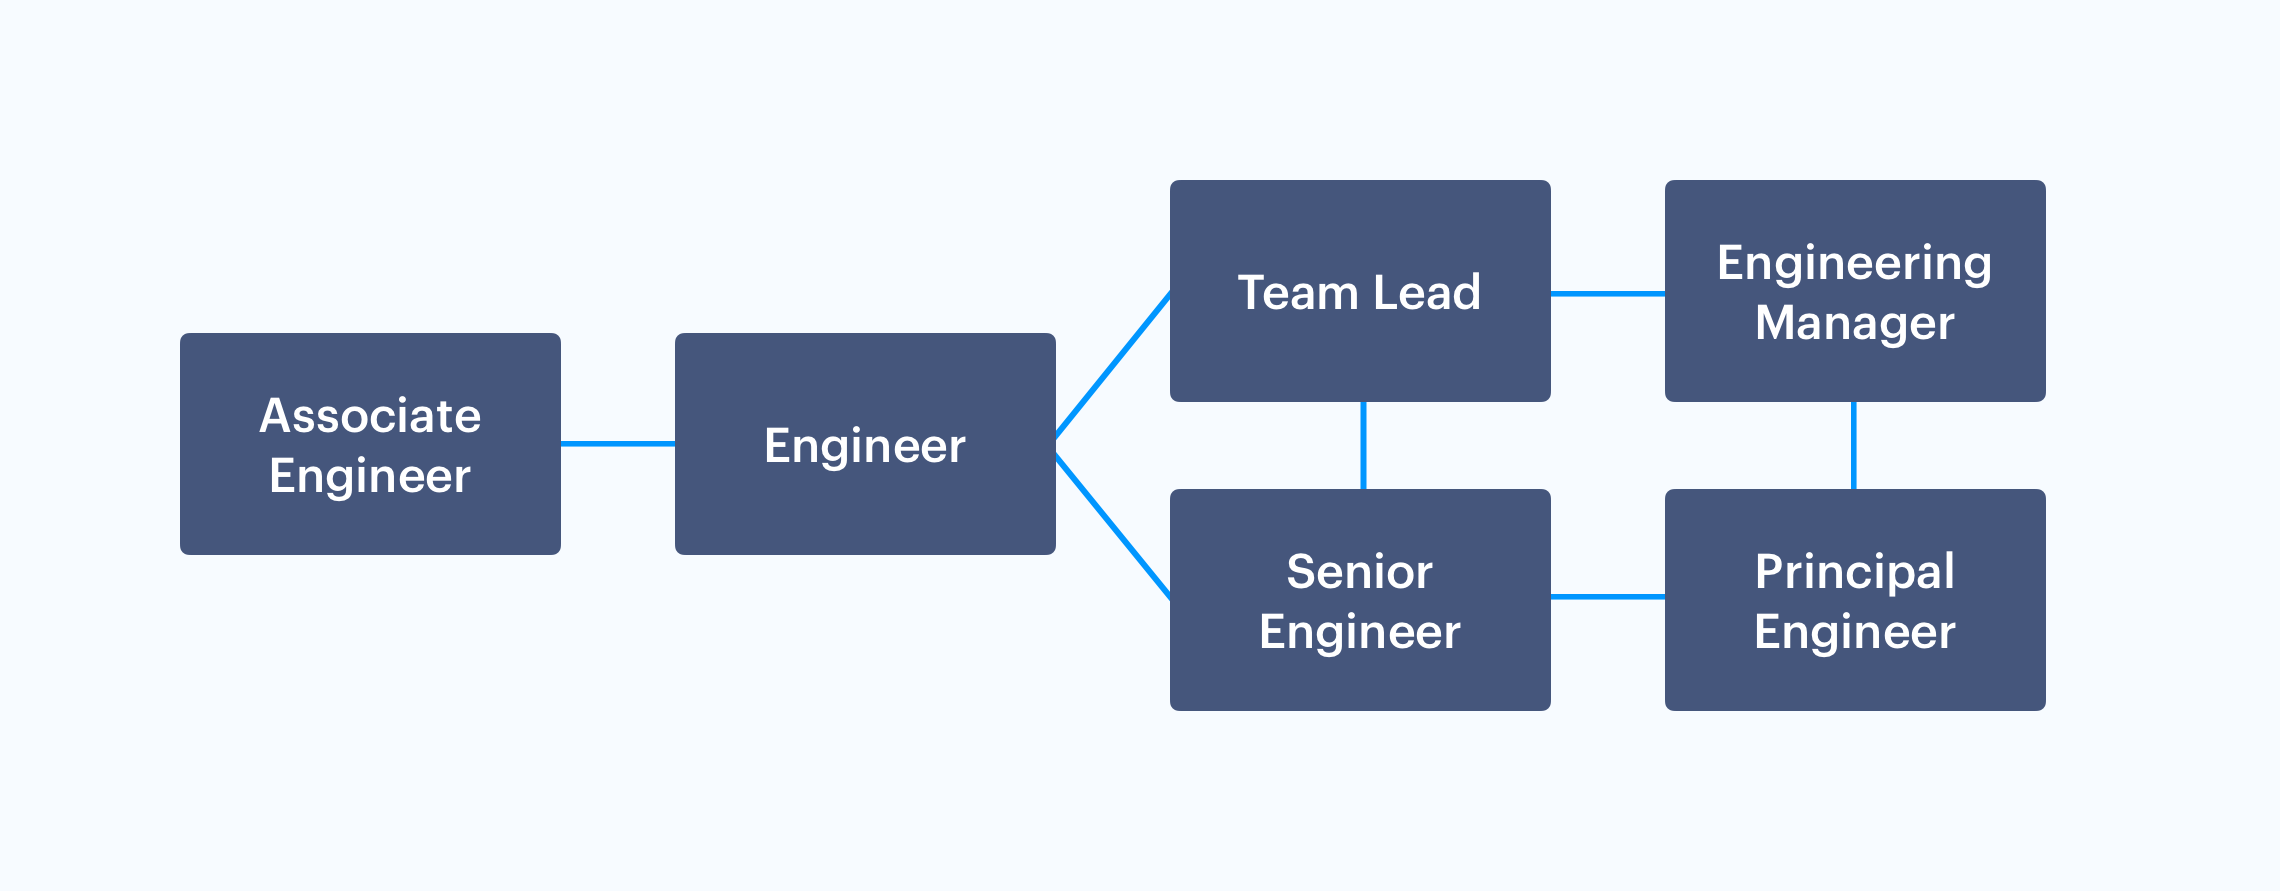 engineering-career-paths.png